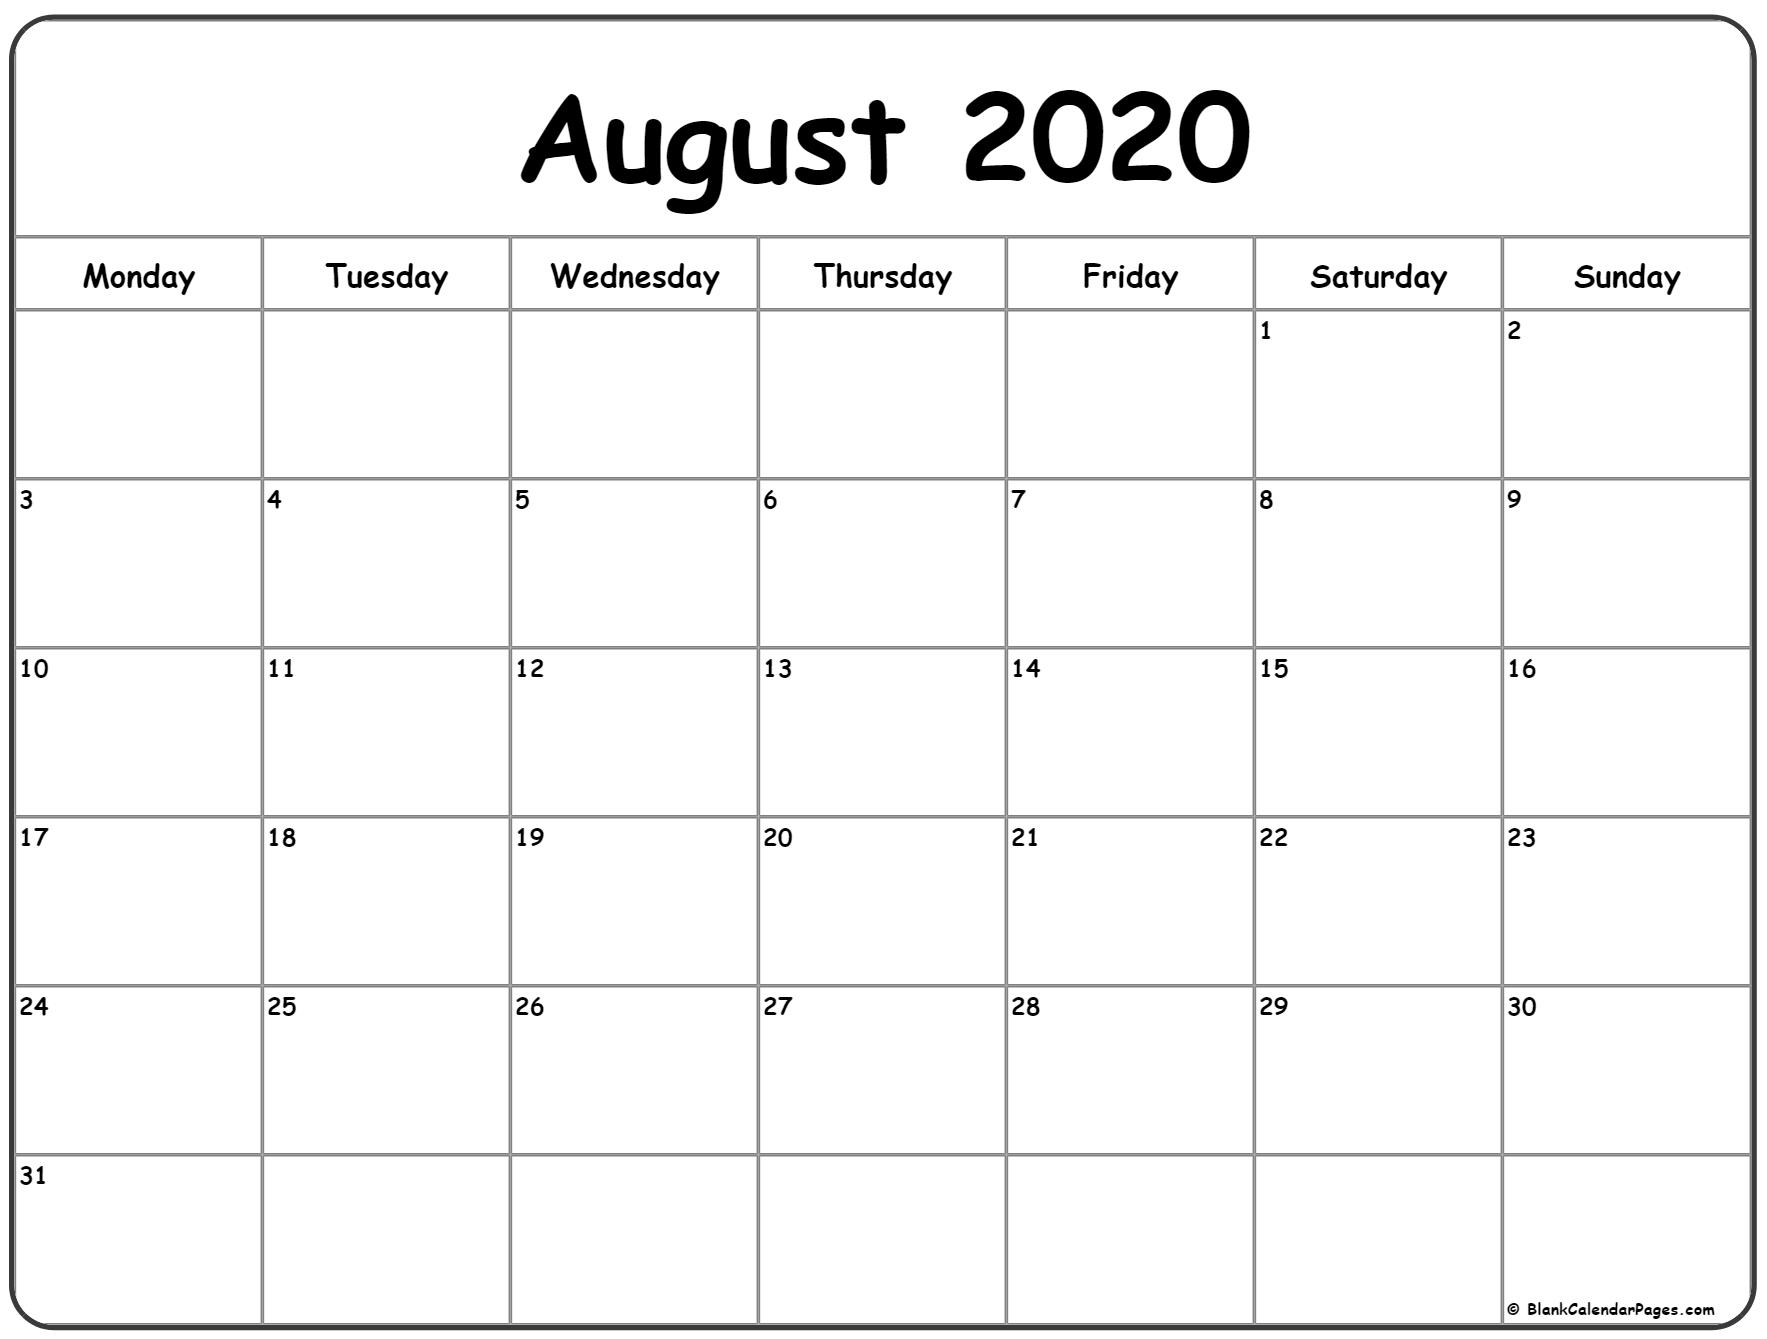 August 2020 Monday Calendar | Monday To Sunday pertaining to 2020 Calendar Starting With Mondays